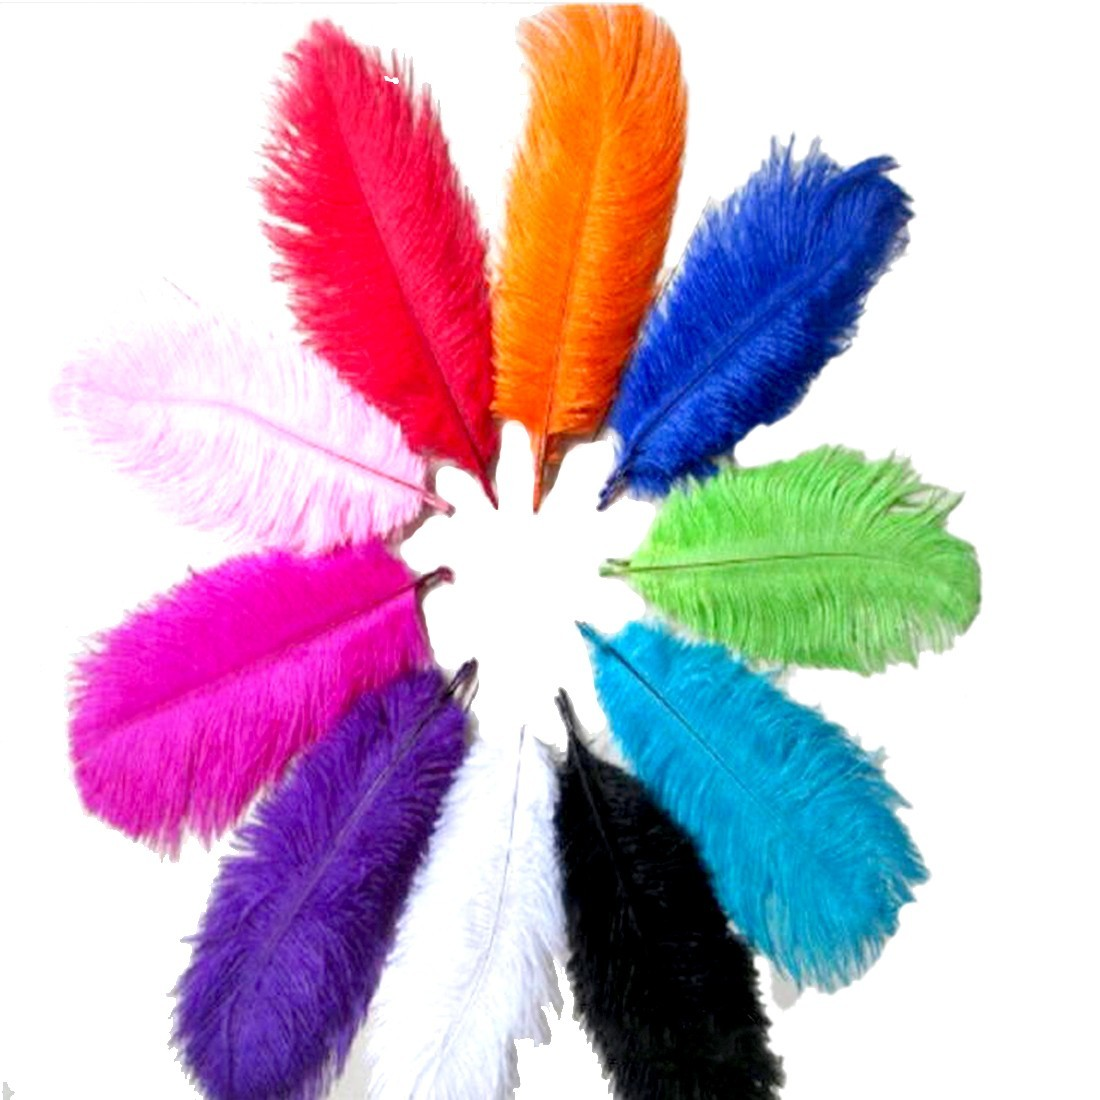 Hot Sale 10pcs Beautiful Ostrich Feathers For DIY Jewelry Craft Making Wedding Party Decor Accessories Wedding Decoration